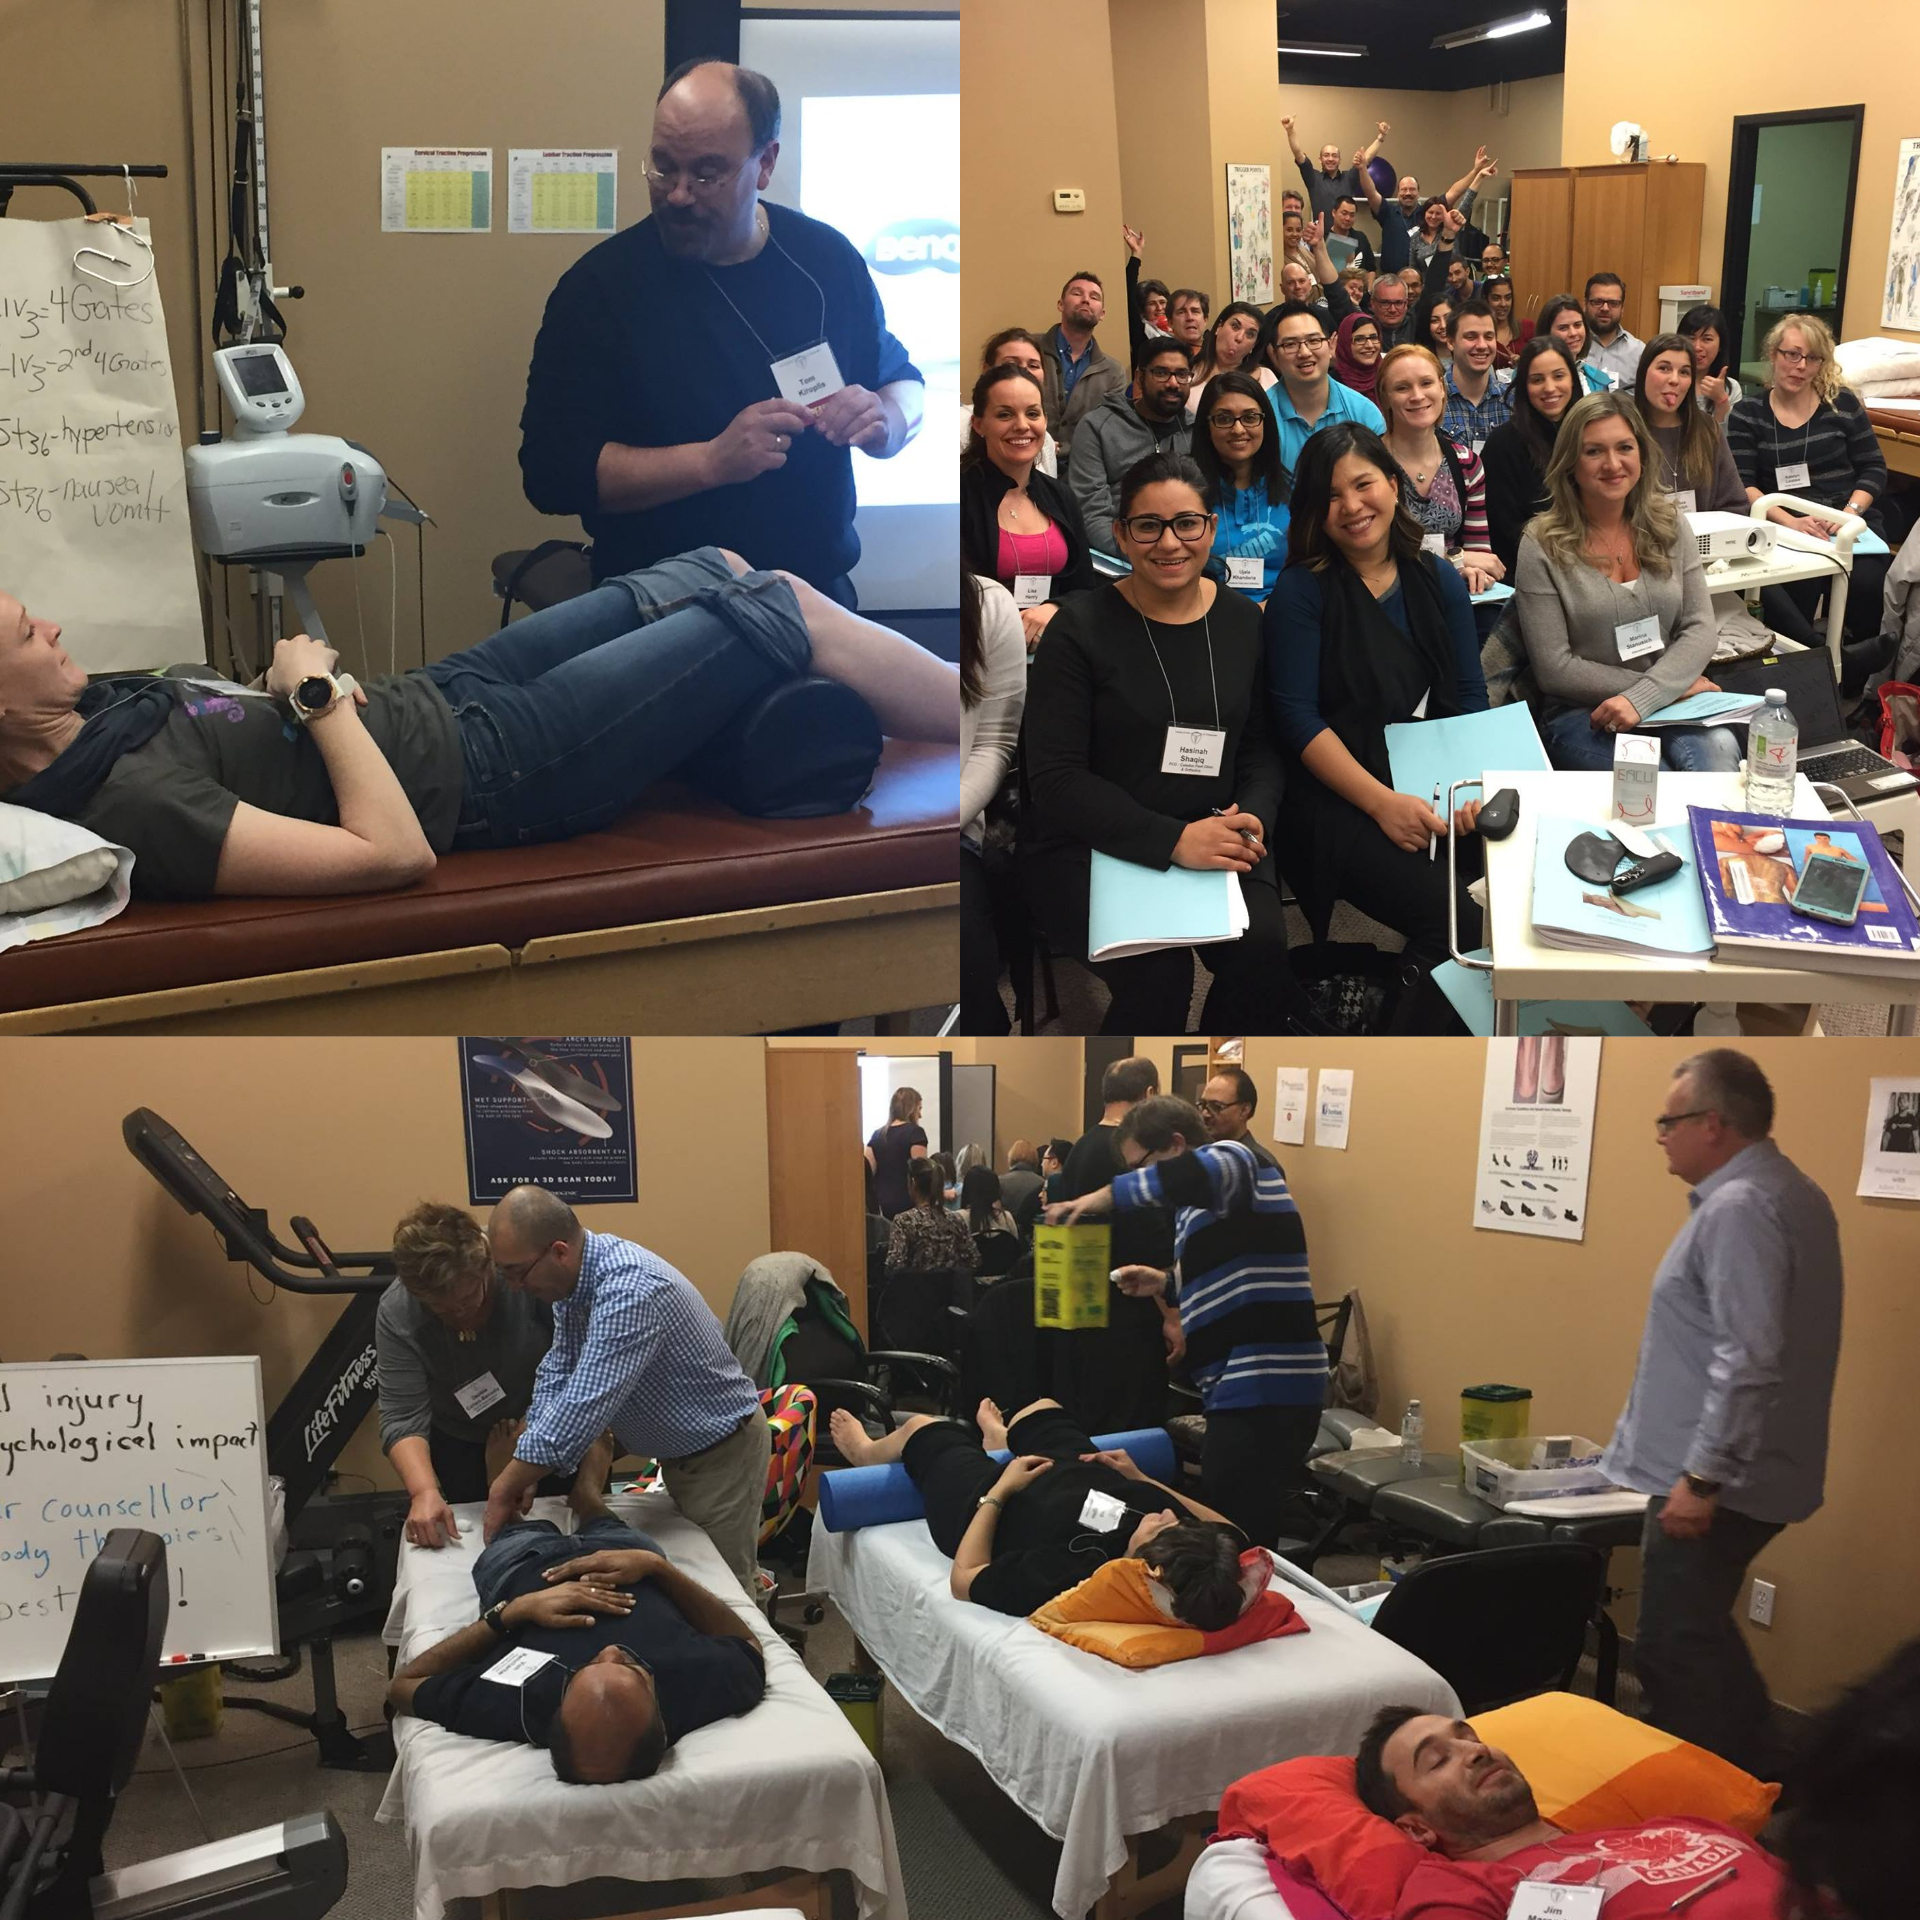 PROGRAM: Cervical Thoracic And Lumbo-Pelvic In Ottawa, Ontario – Fall 2019